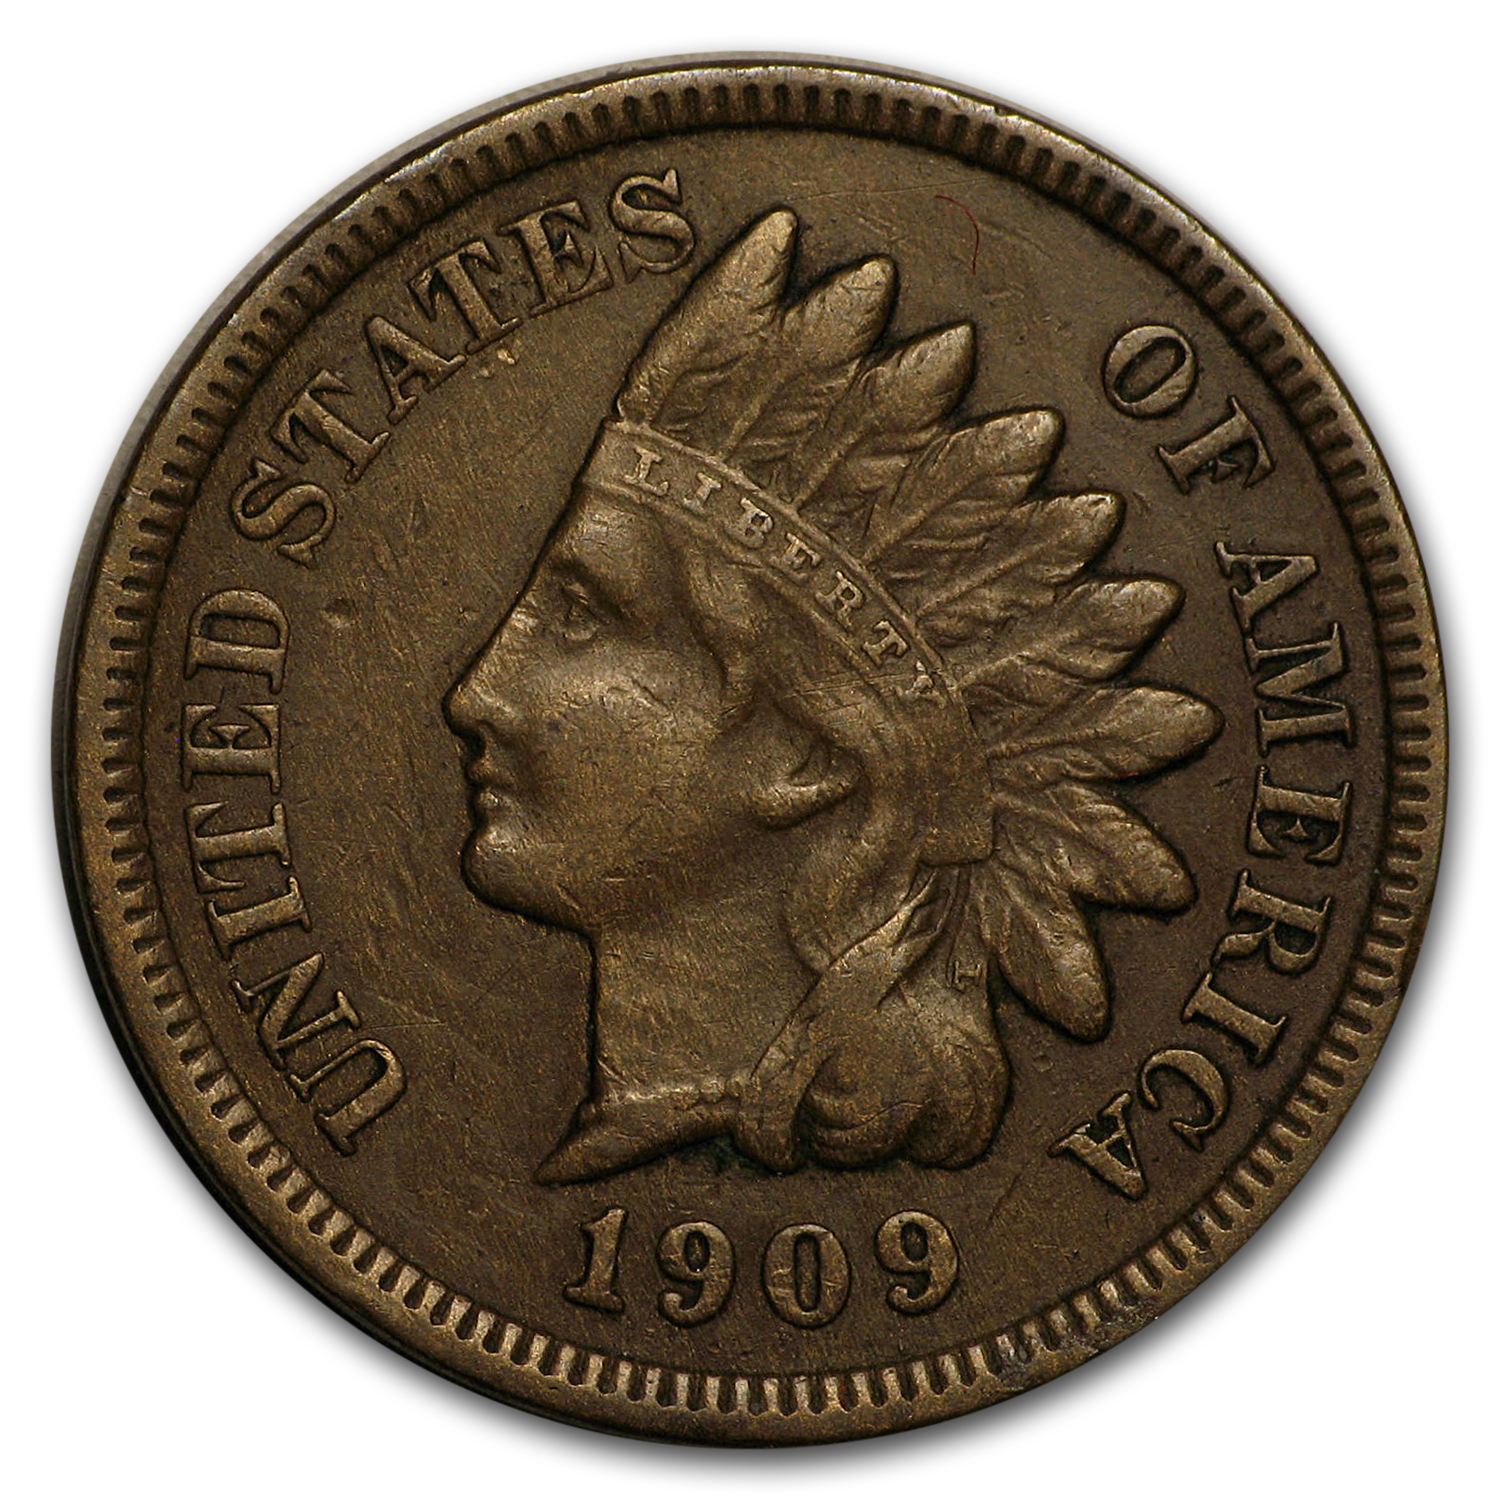 1909-S Indian Head Cent VF